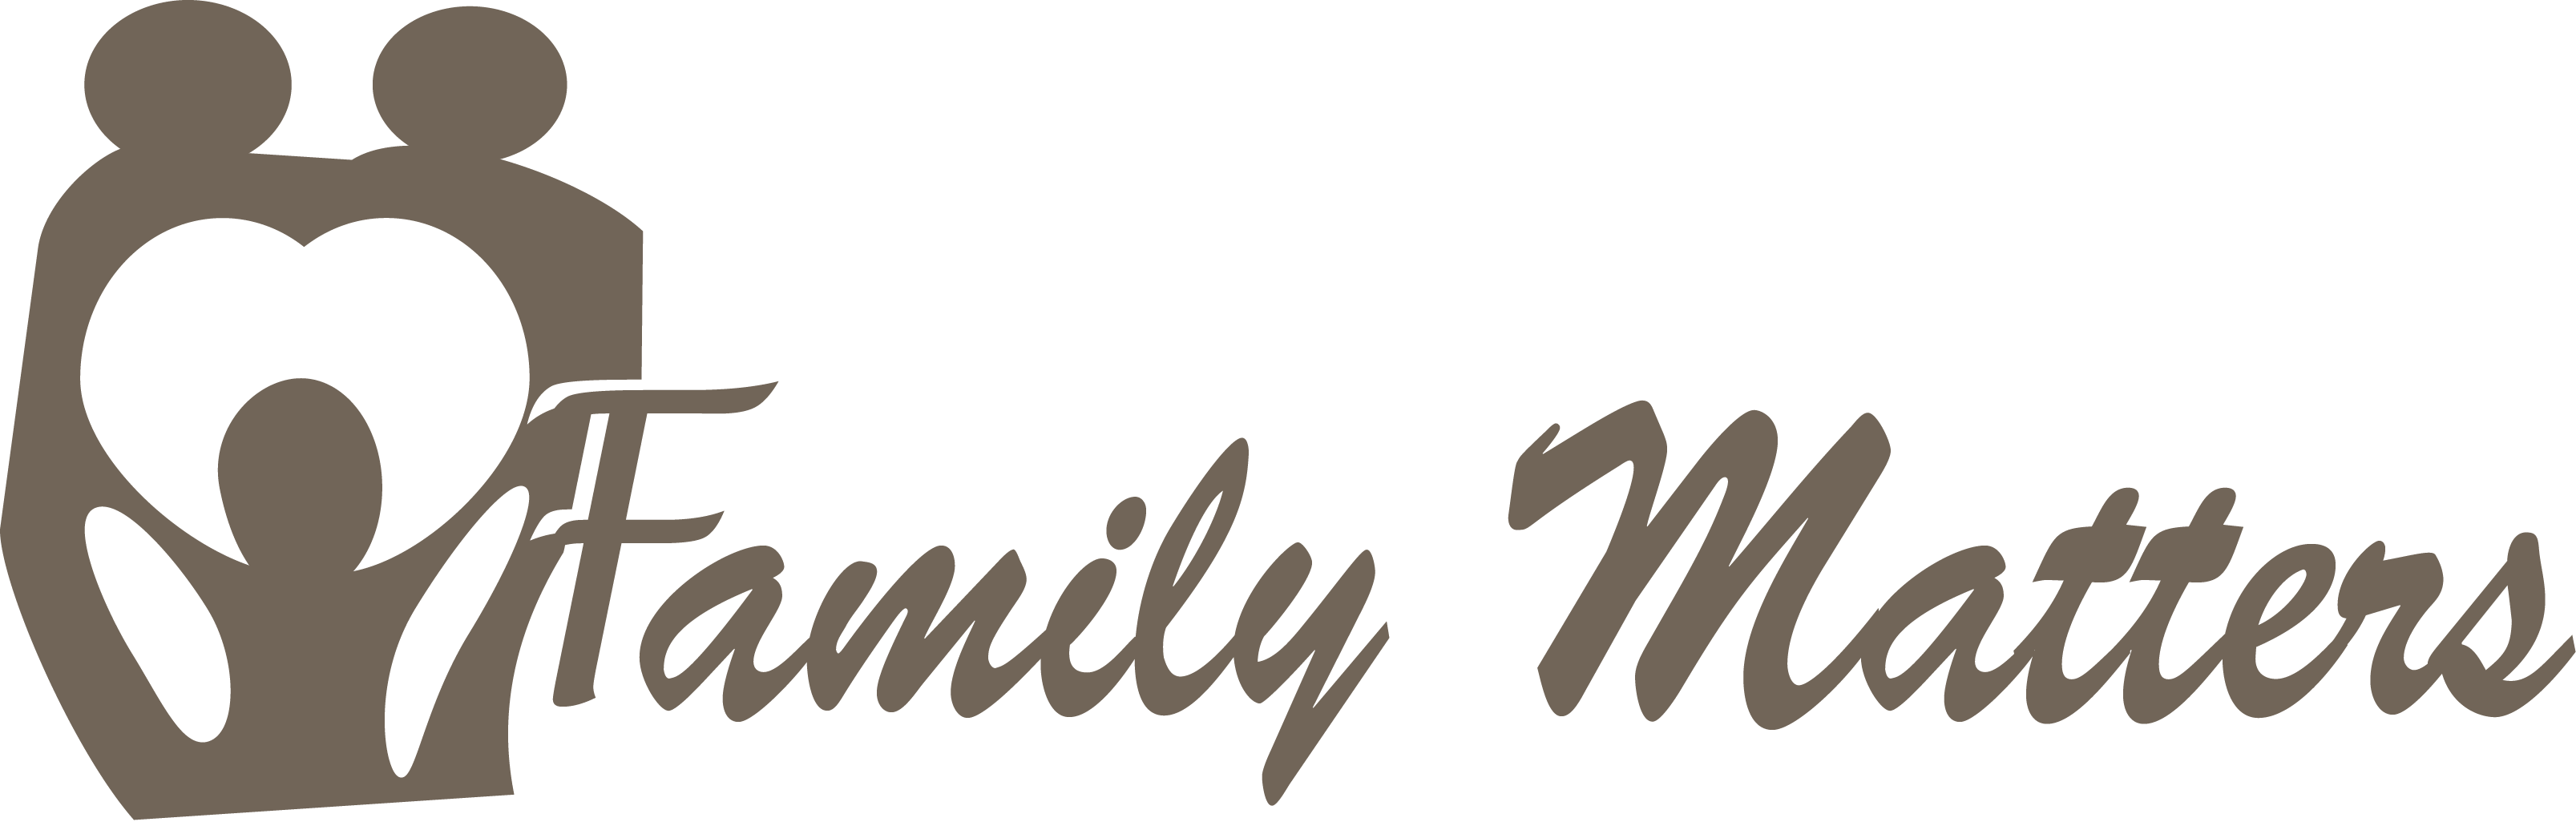 What does family mean to you family matters center for relational what does family mean to you biocorpaavc Images